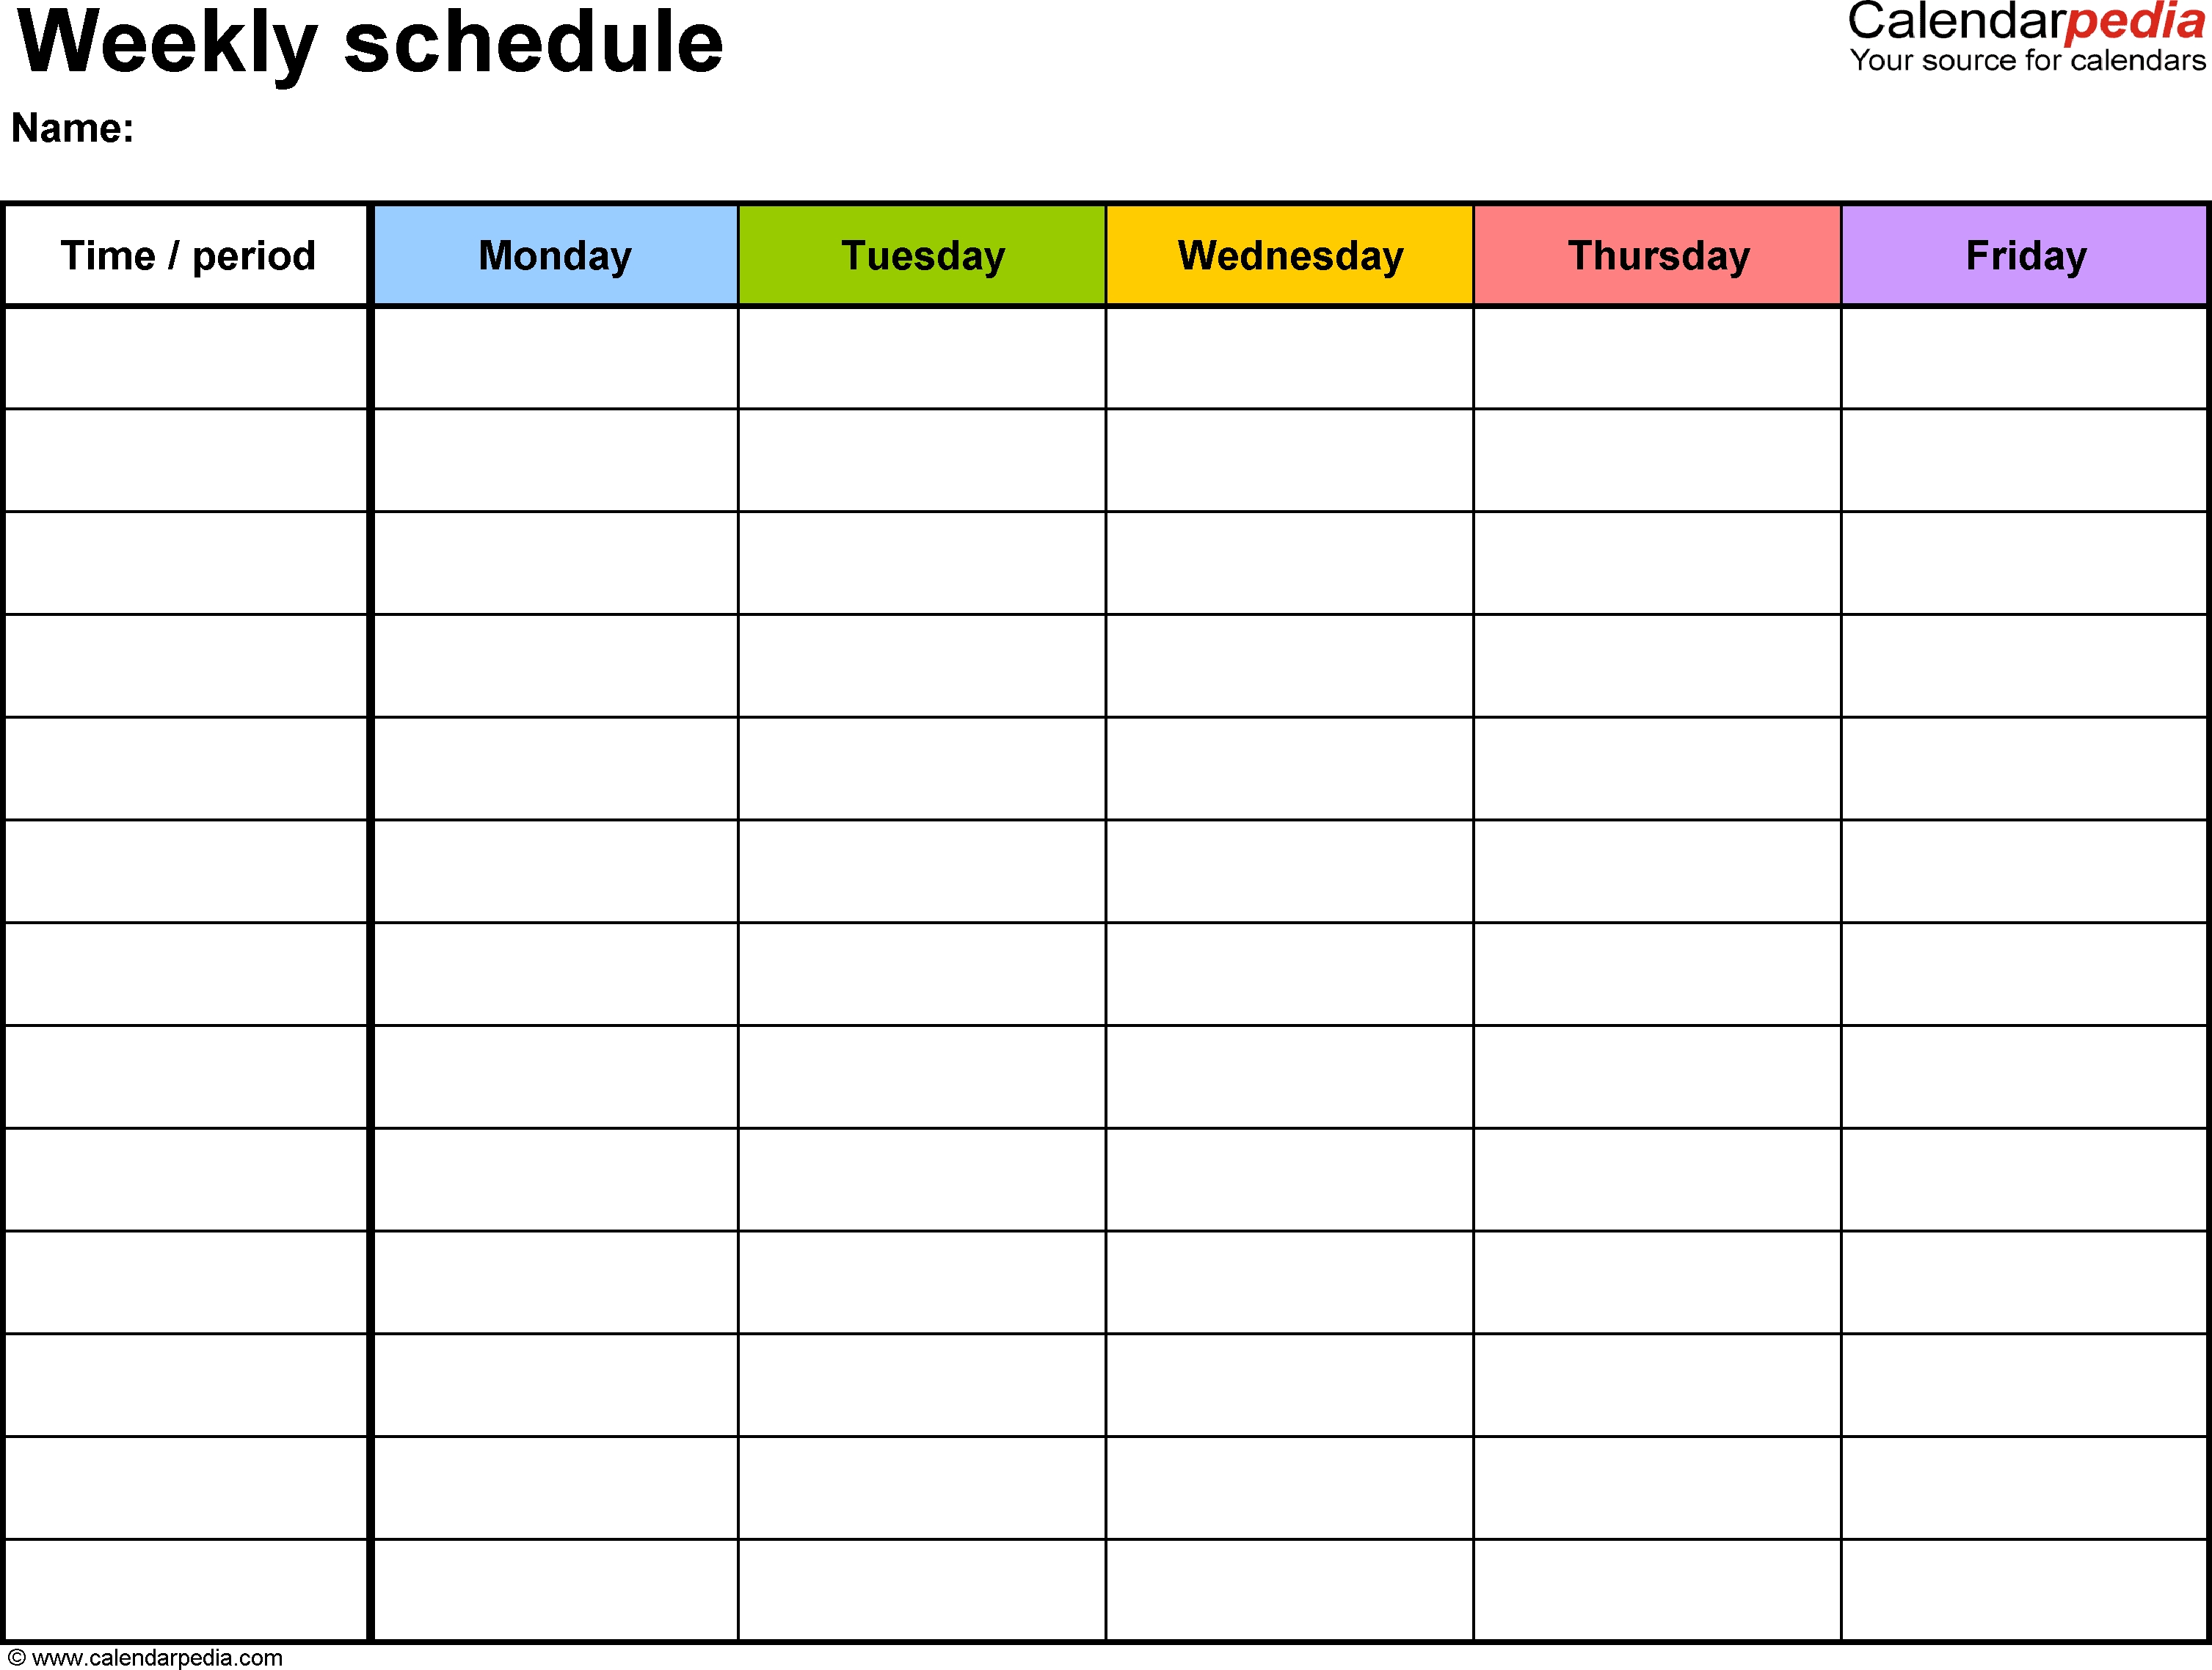 Free Weekly Schedule Templates For Word - 18 Templates within 5 Day Week Calendar Template